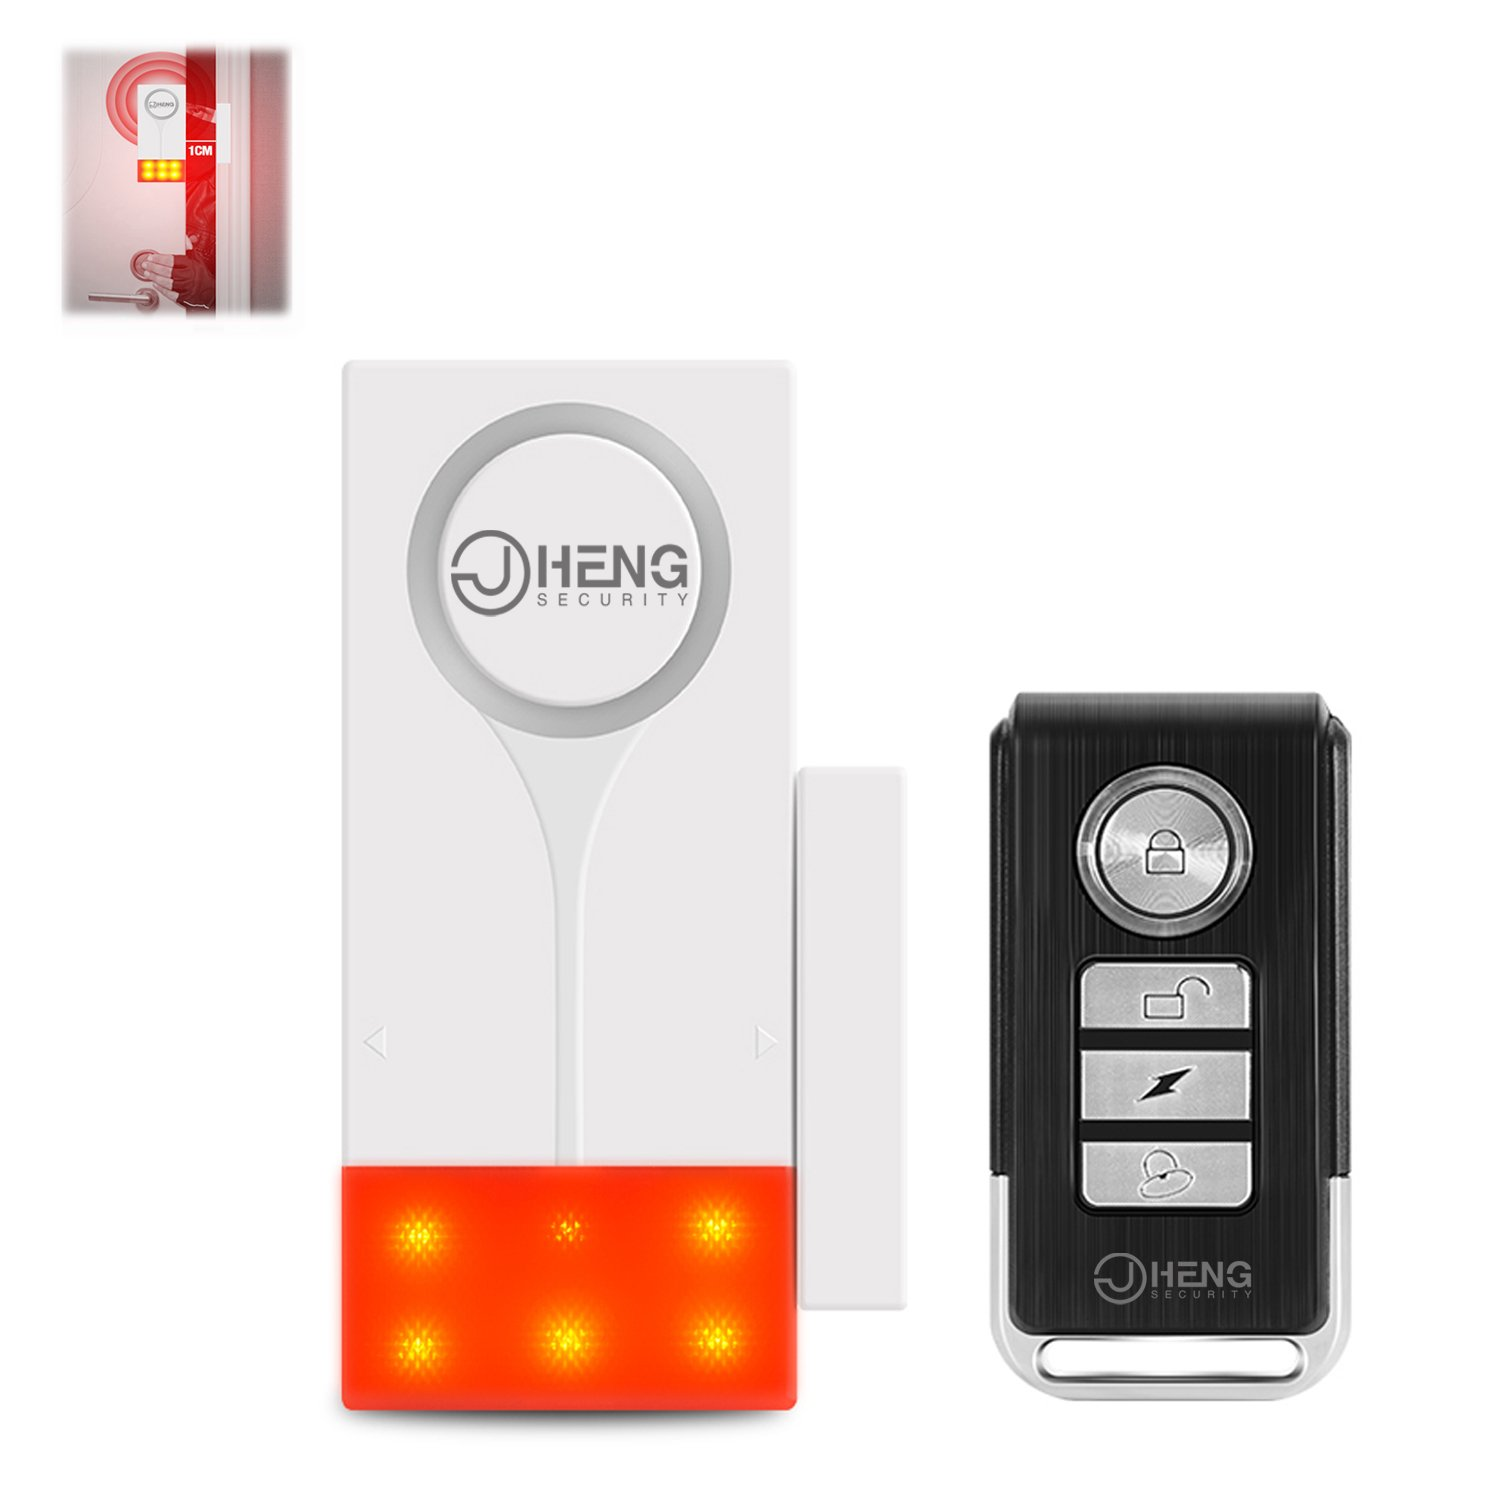 JC Standalone Wireless Remote Control Vibration Alarm Sensor Door Window Home Business Security Sensor Detector Security Alarm with quick flash strobe 105dB Easy Use